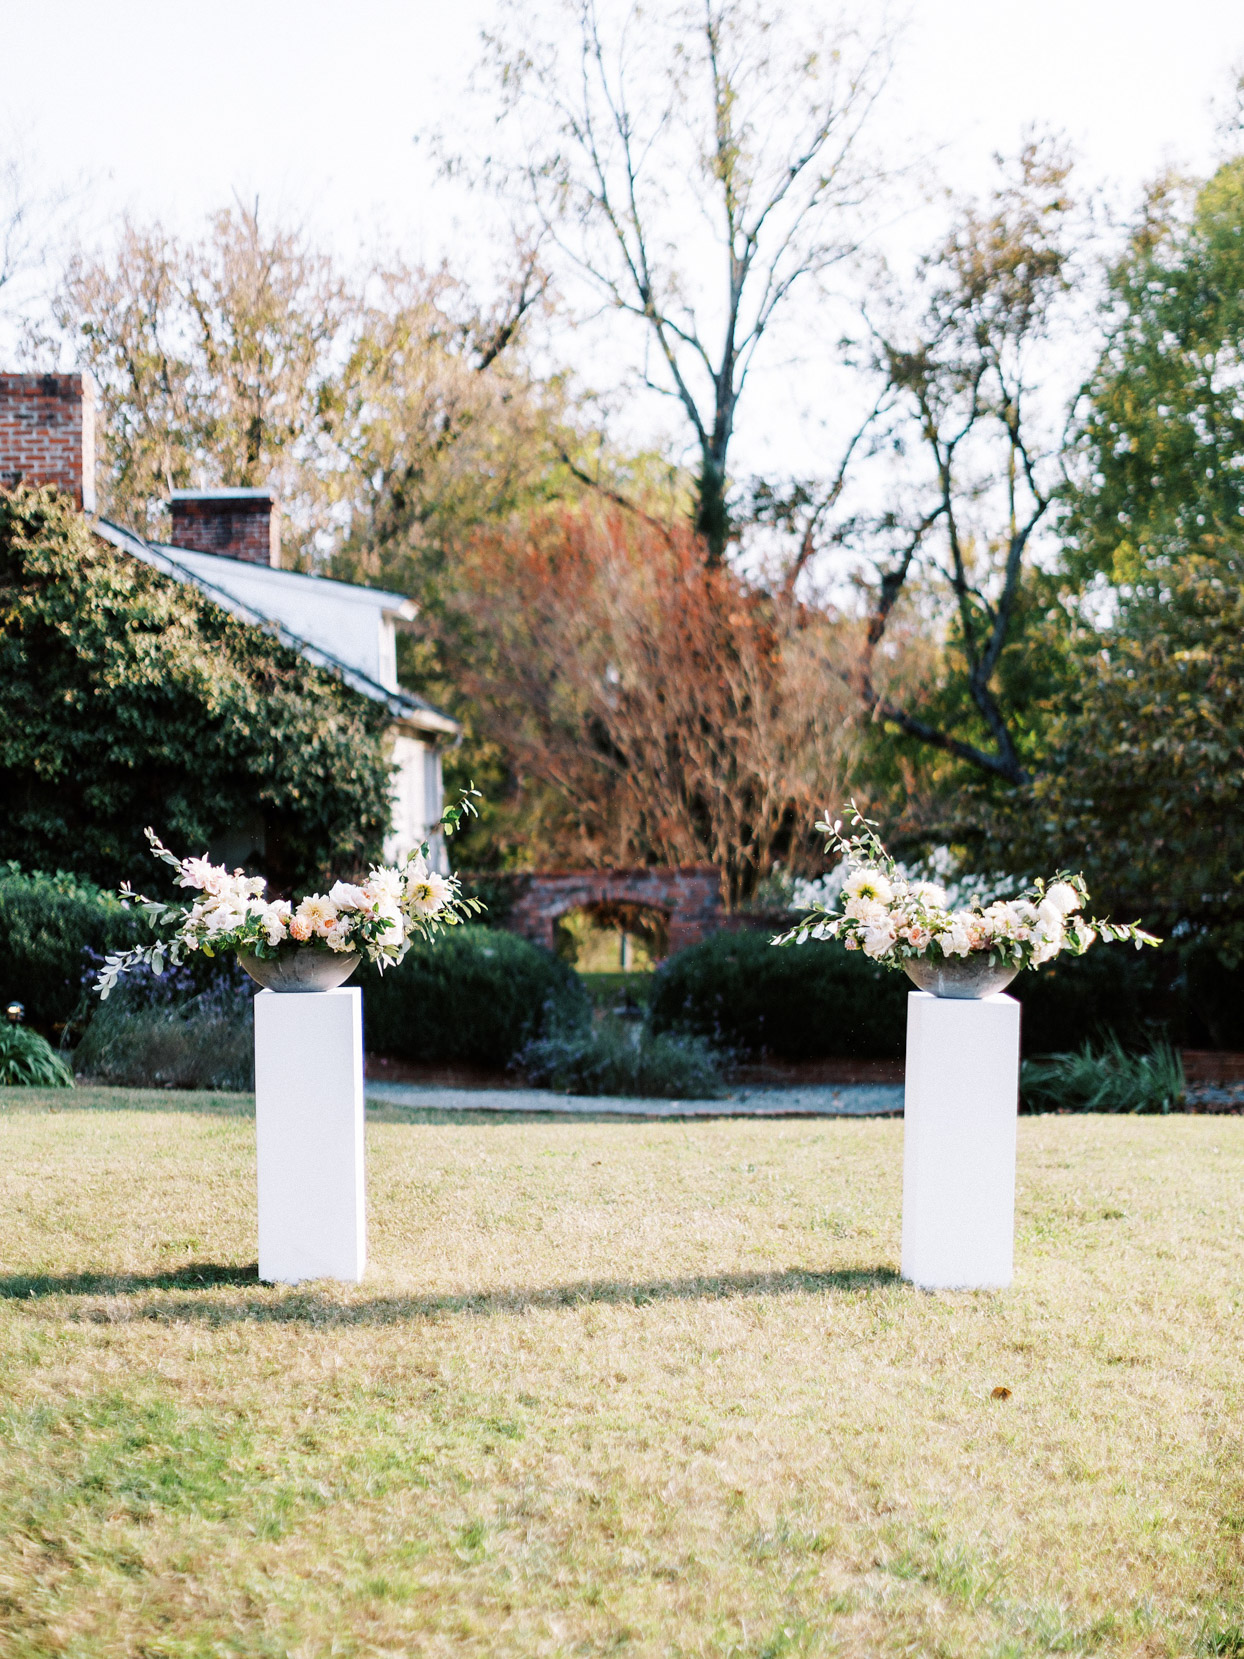 outdoor ceremony space with pillars with floral bouquets on top